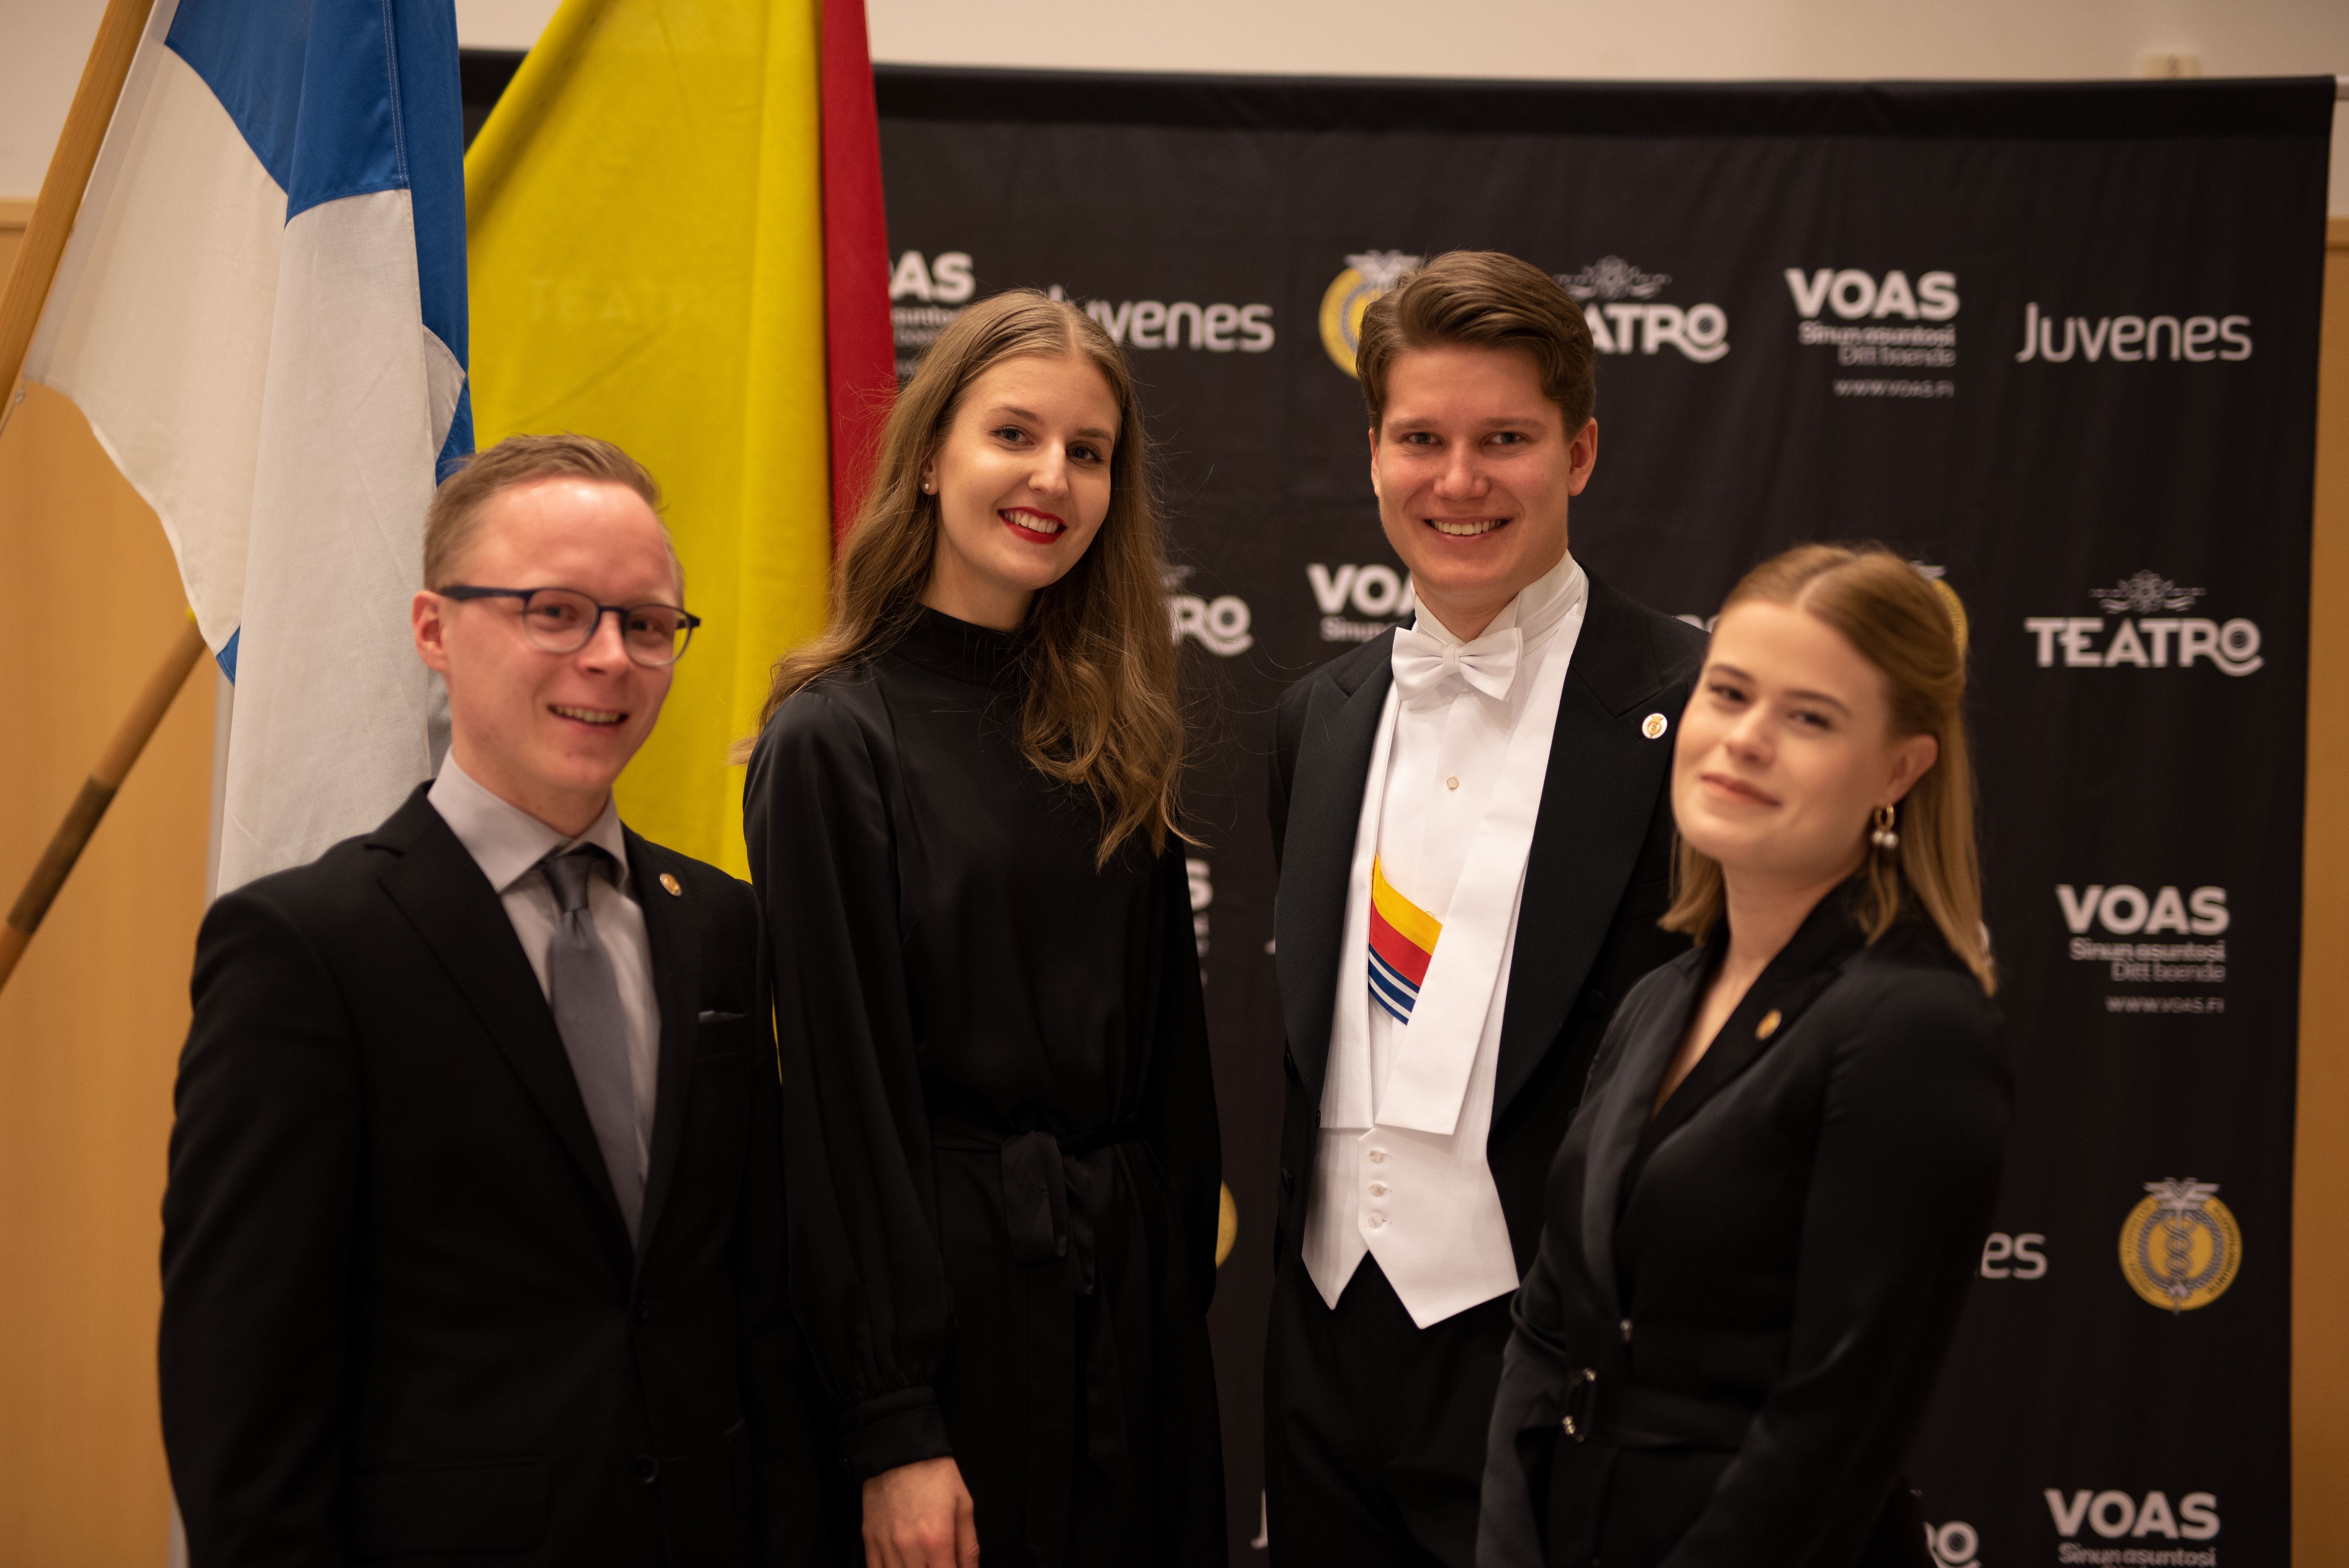 Board's Olli, Sara, Henri and Aada standing in front of Finland's and the Student Union's flags during the annual celebrations